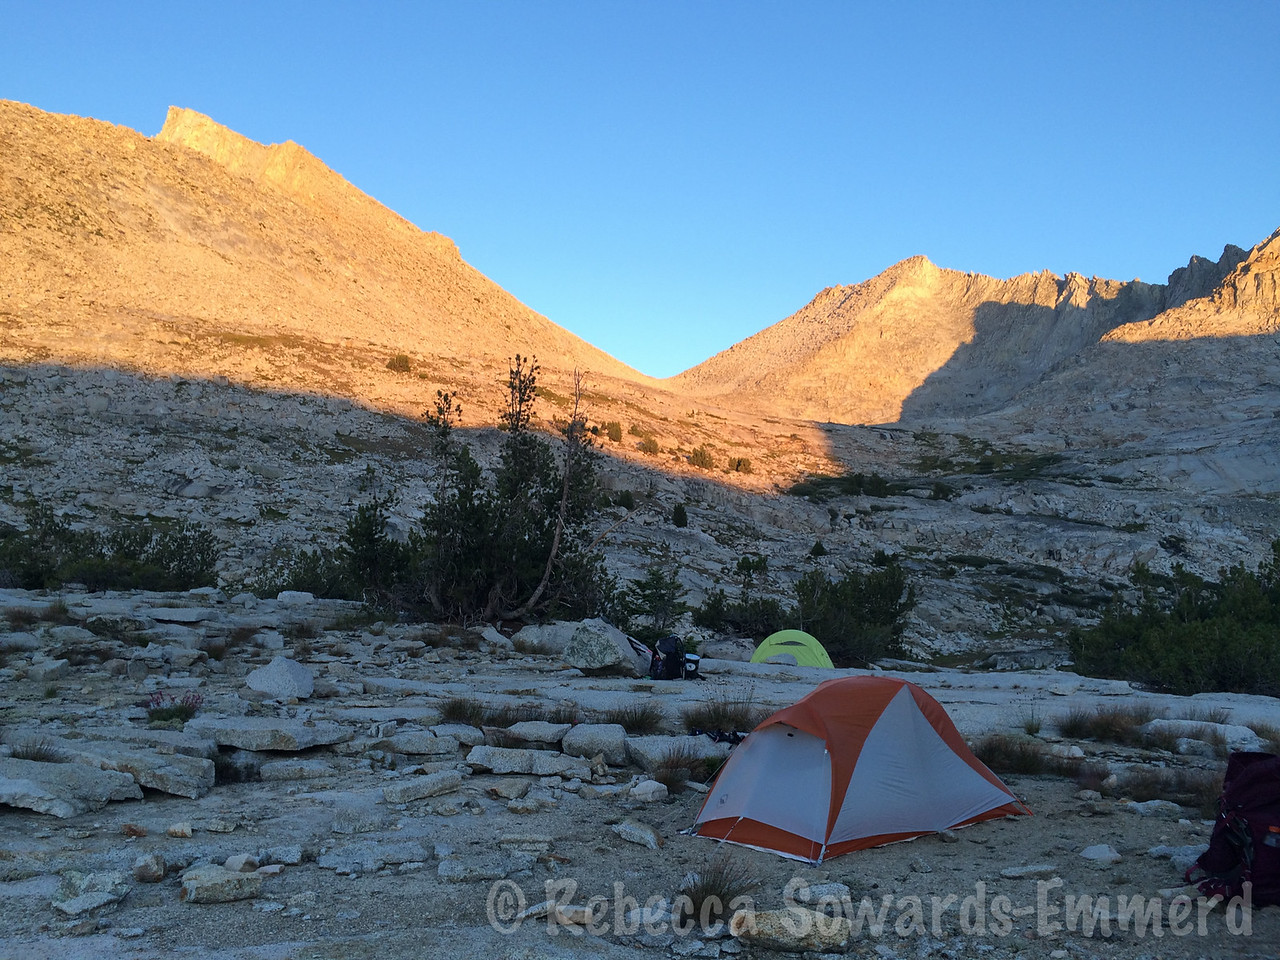 Finally settled into camp at one of the upper Sphinx Lakes, Sphinx pass in the background